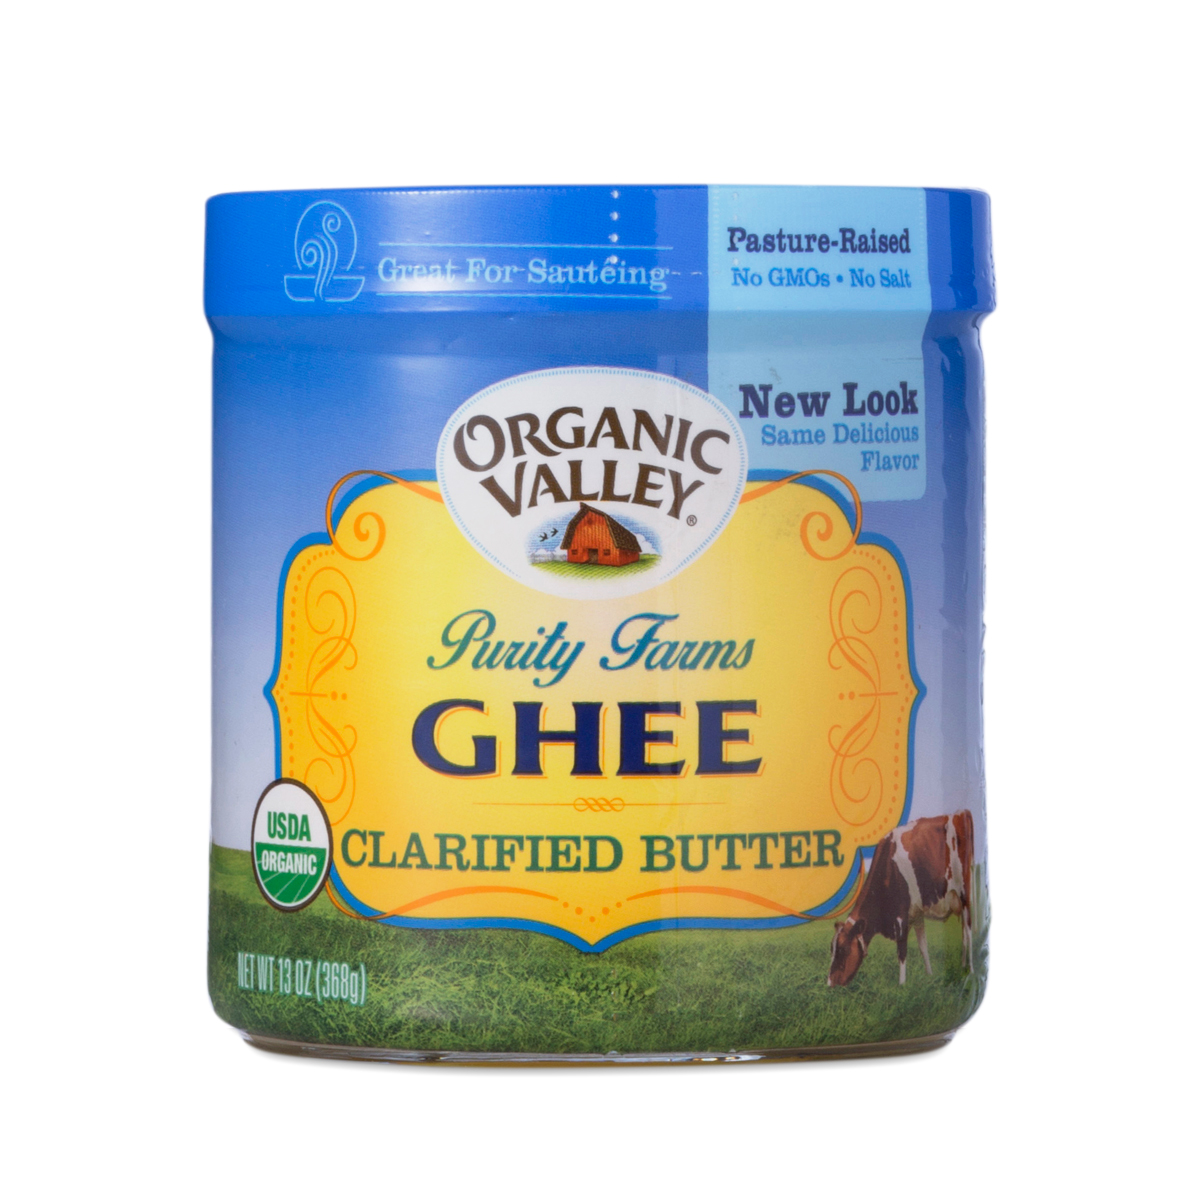 Ghee By Purity Farms Thrive Market